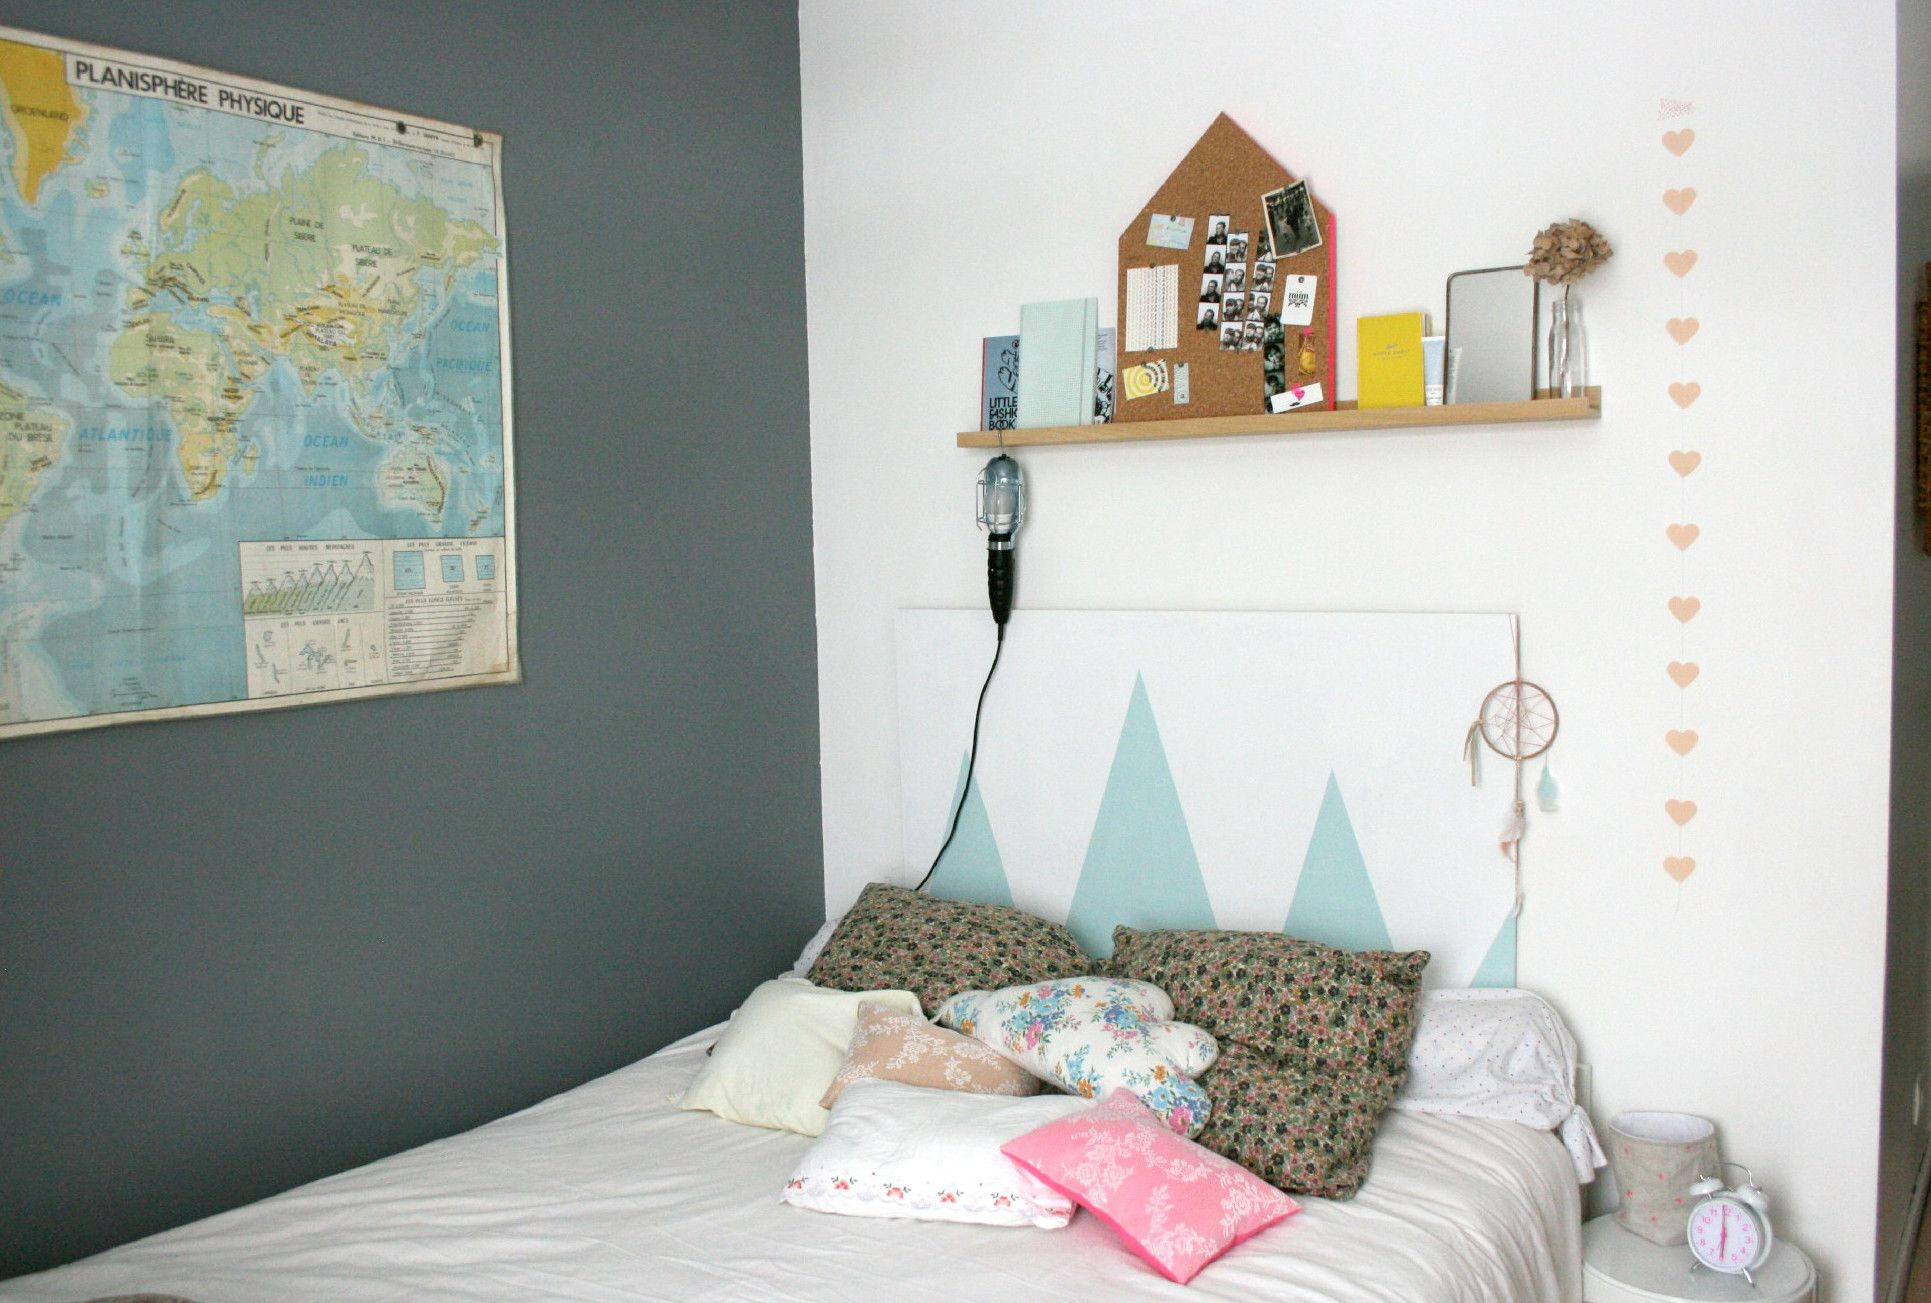 #Diy Decorating #Decorating Ideas How To Make An Original Headboard For The